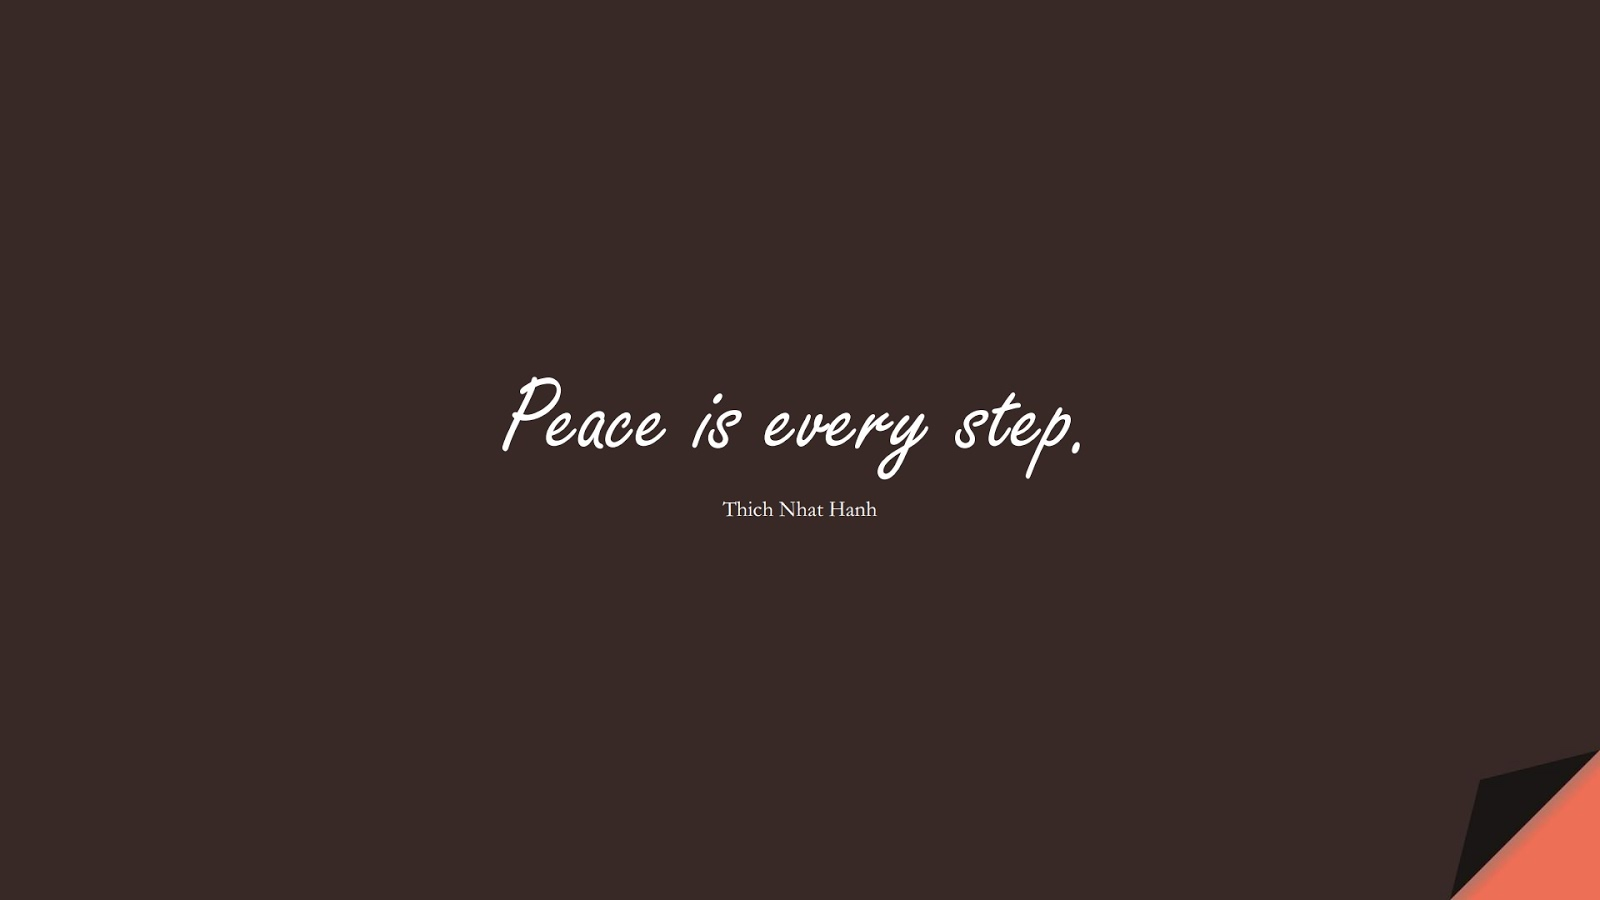 Peace is every step. (Thich Nhat Hanh);  #ShortQuotes